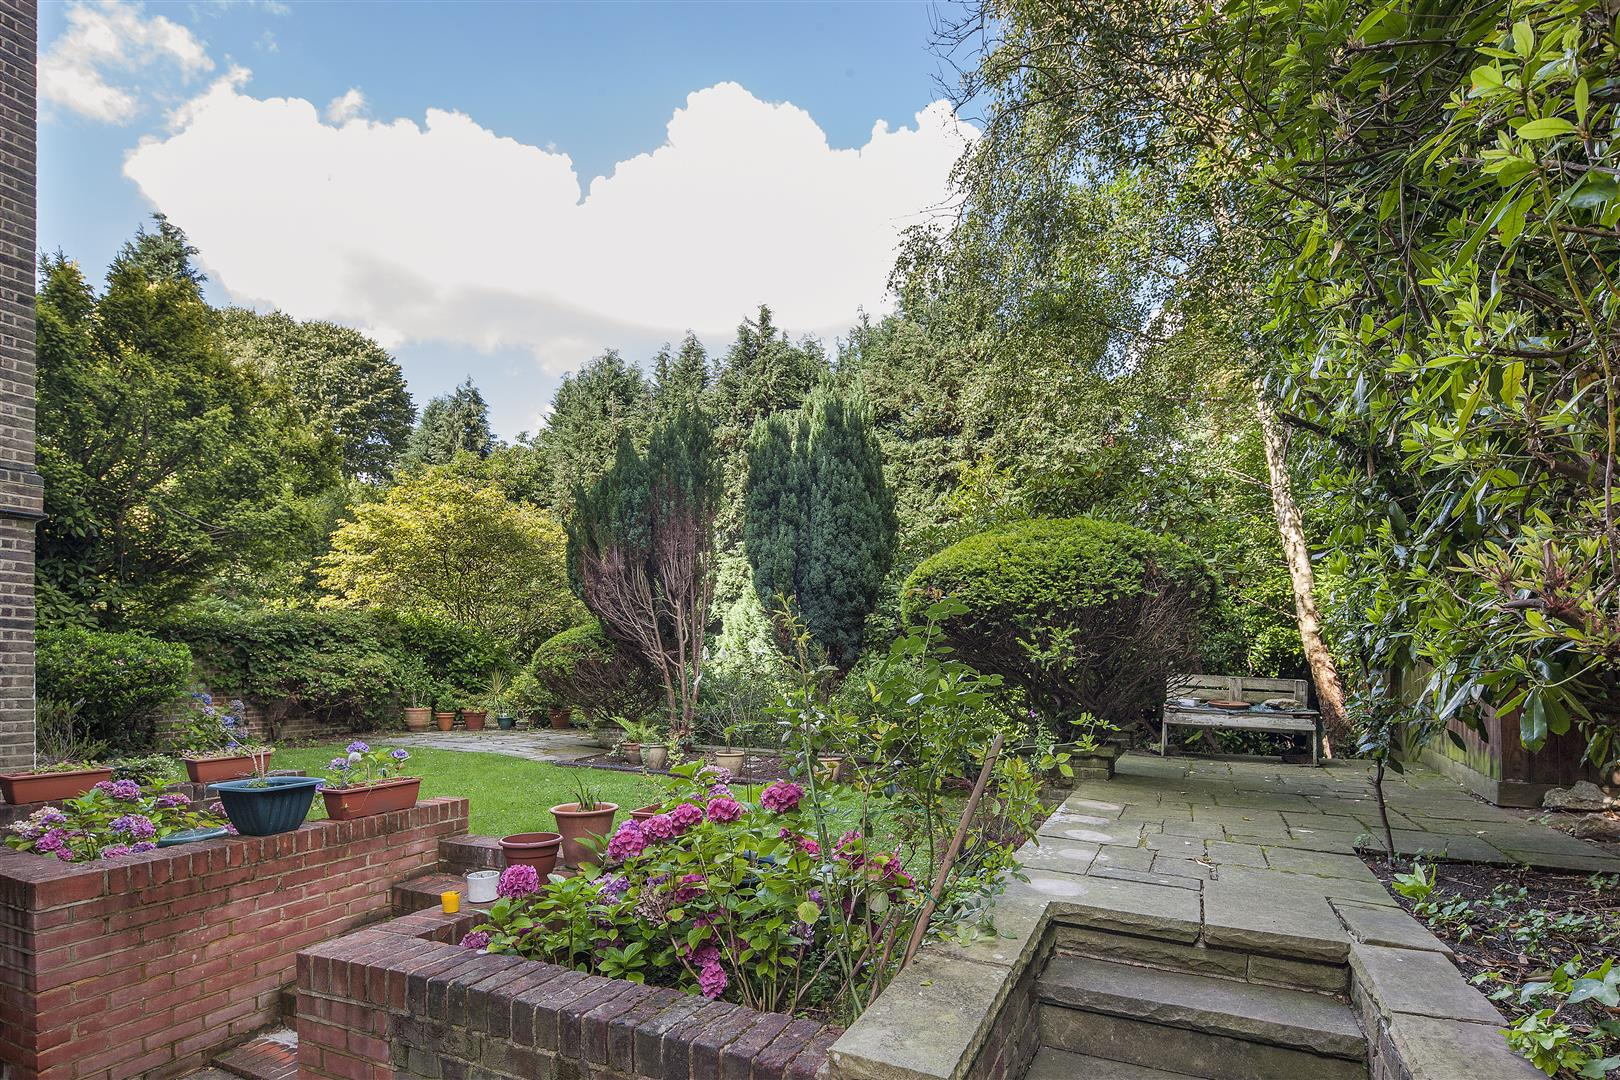 4 Bedrooms Flat for sale in Garden Apartment, West Heath Road, Hampstead, NW3